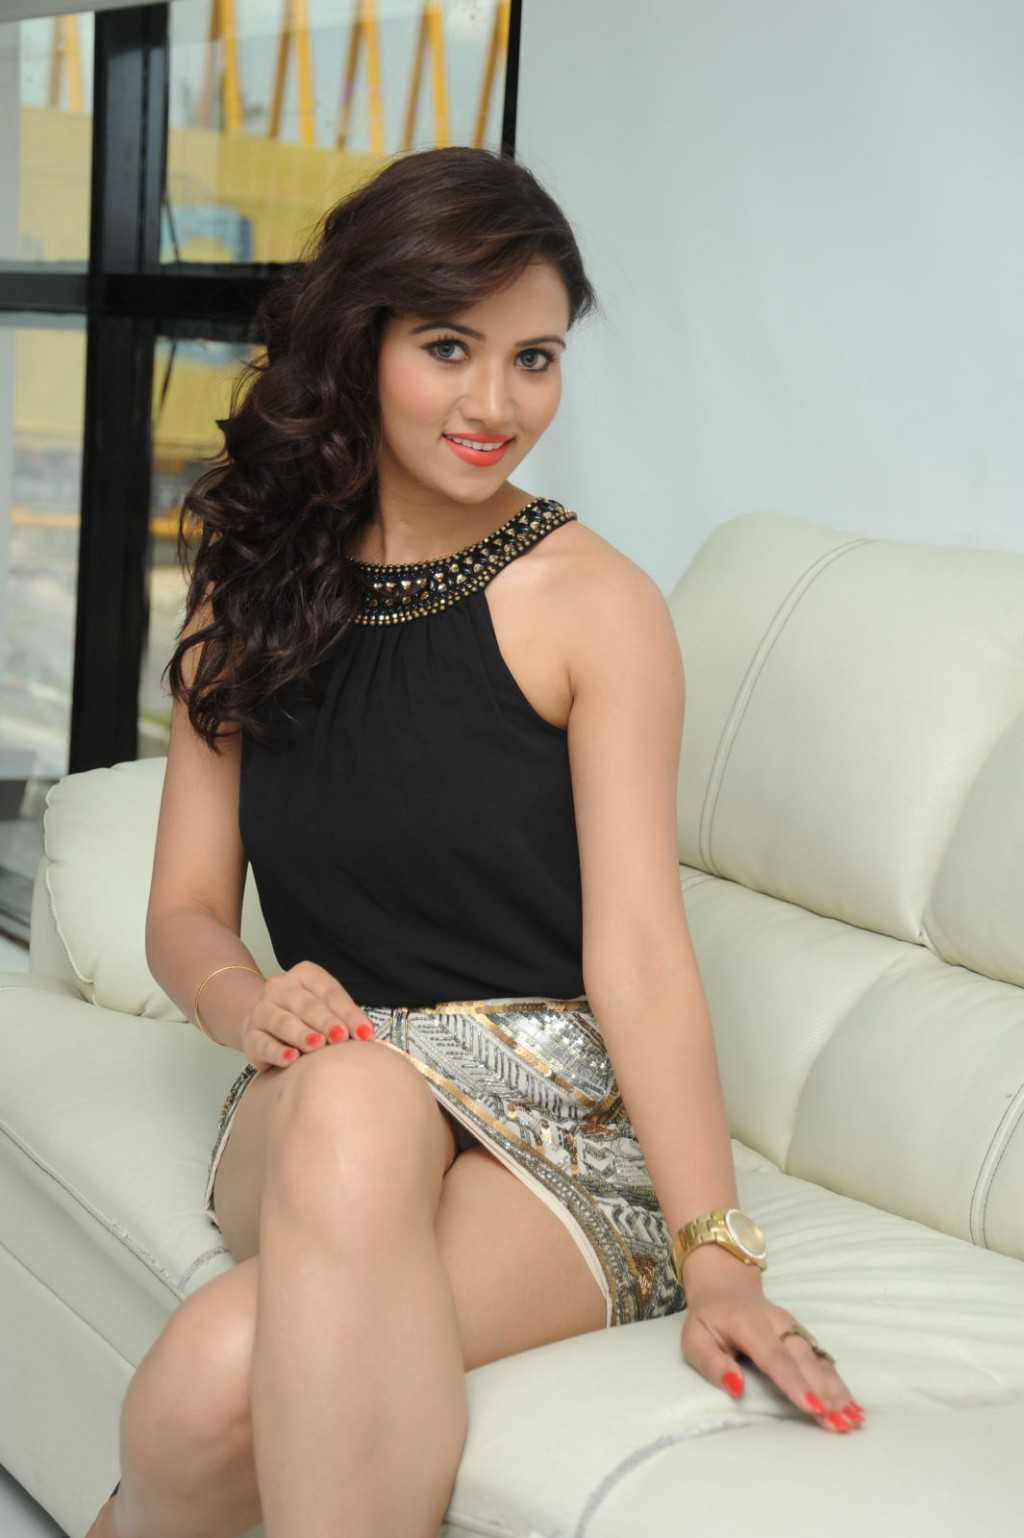 South-Indian-Actress-Preeti-Rana-Hot-Thigh-Show-Photos-9